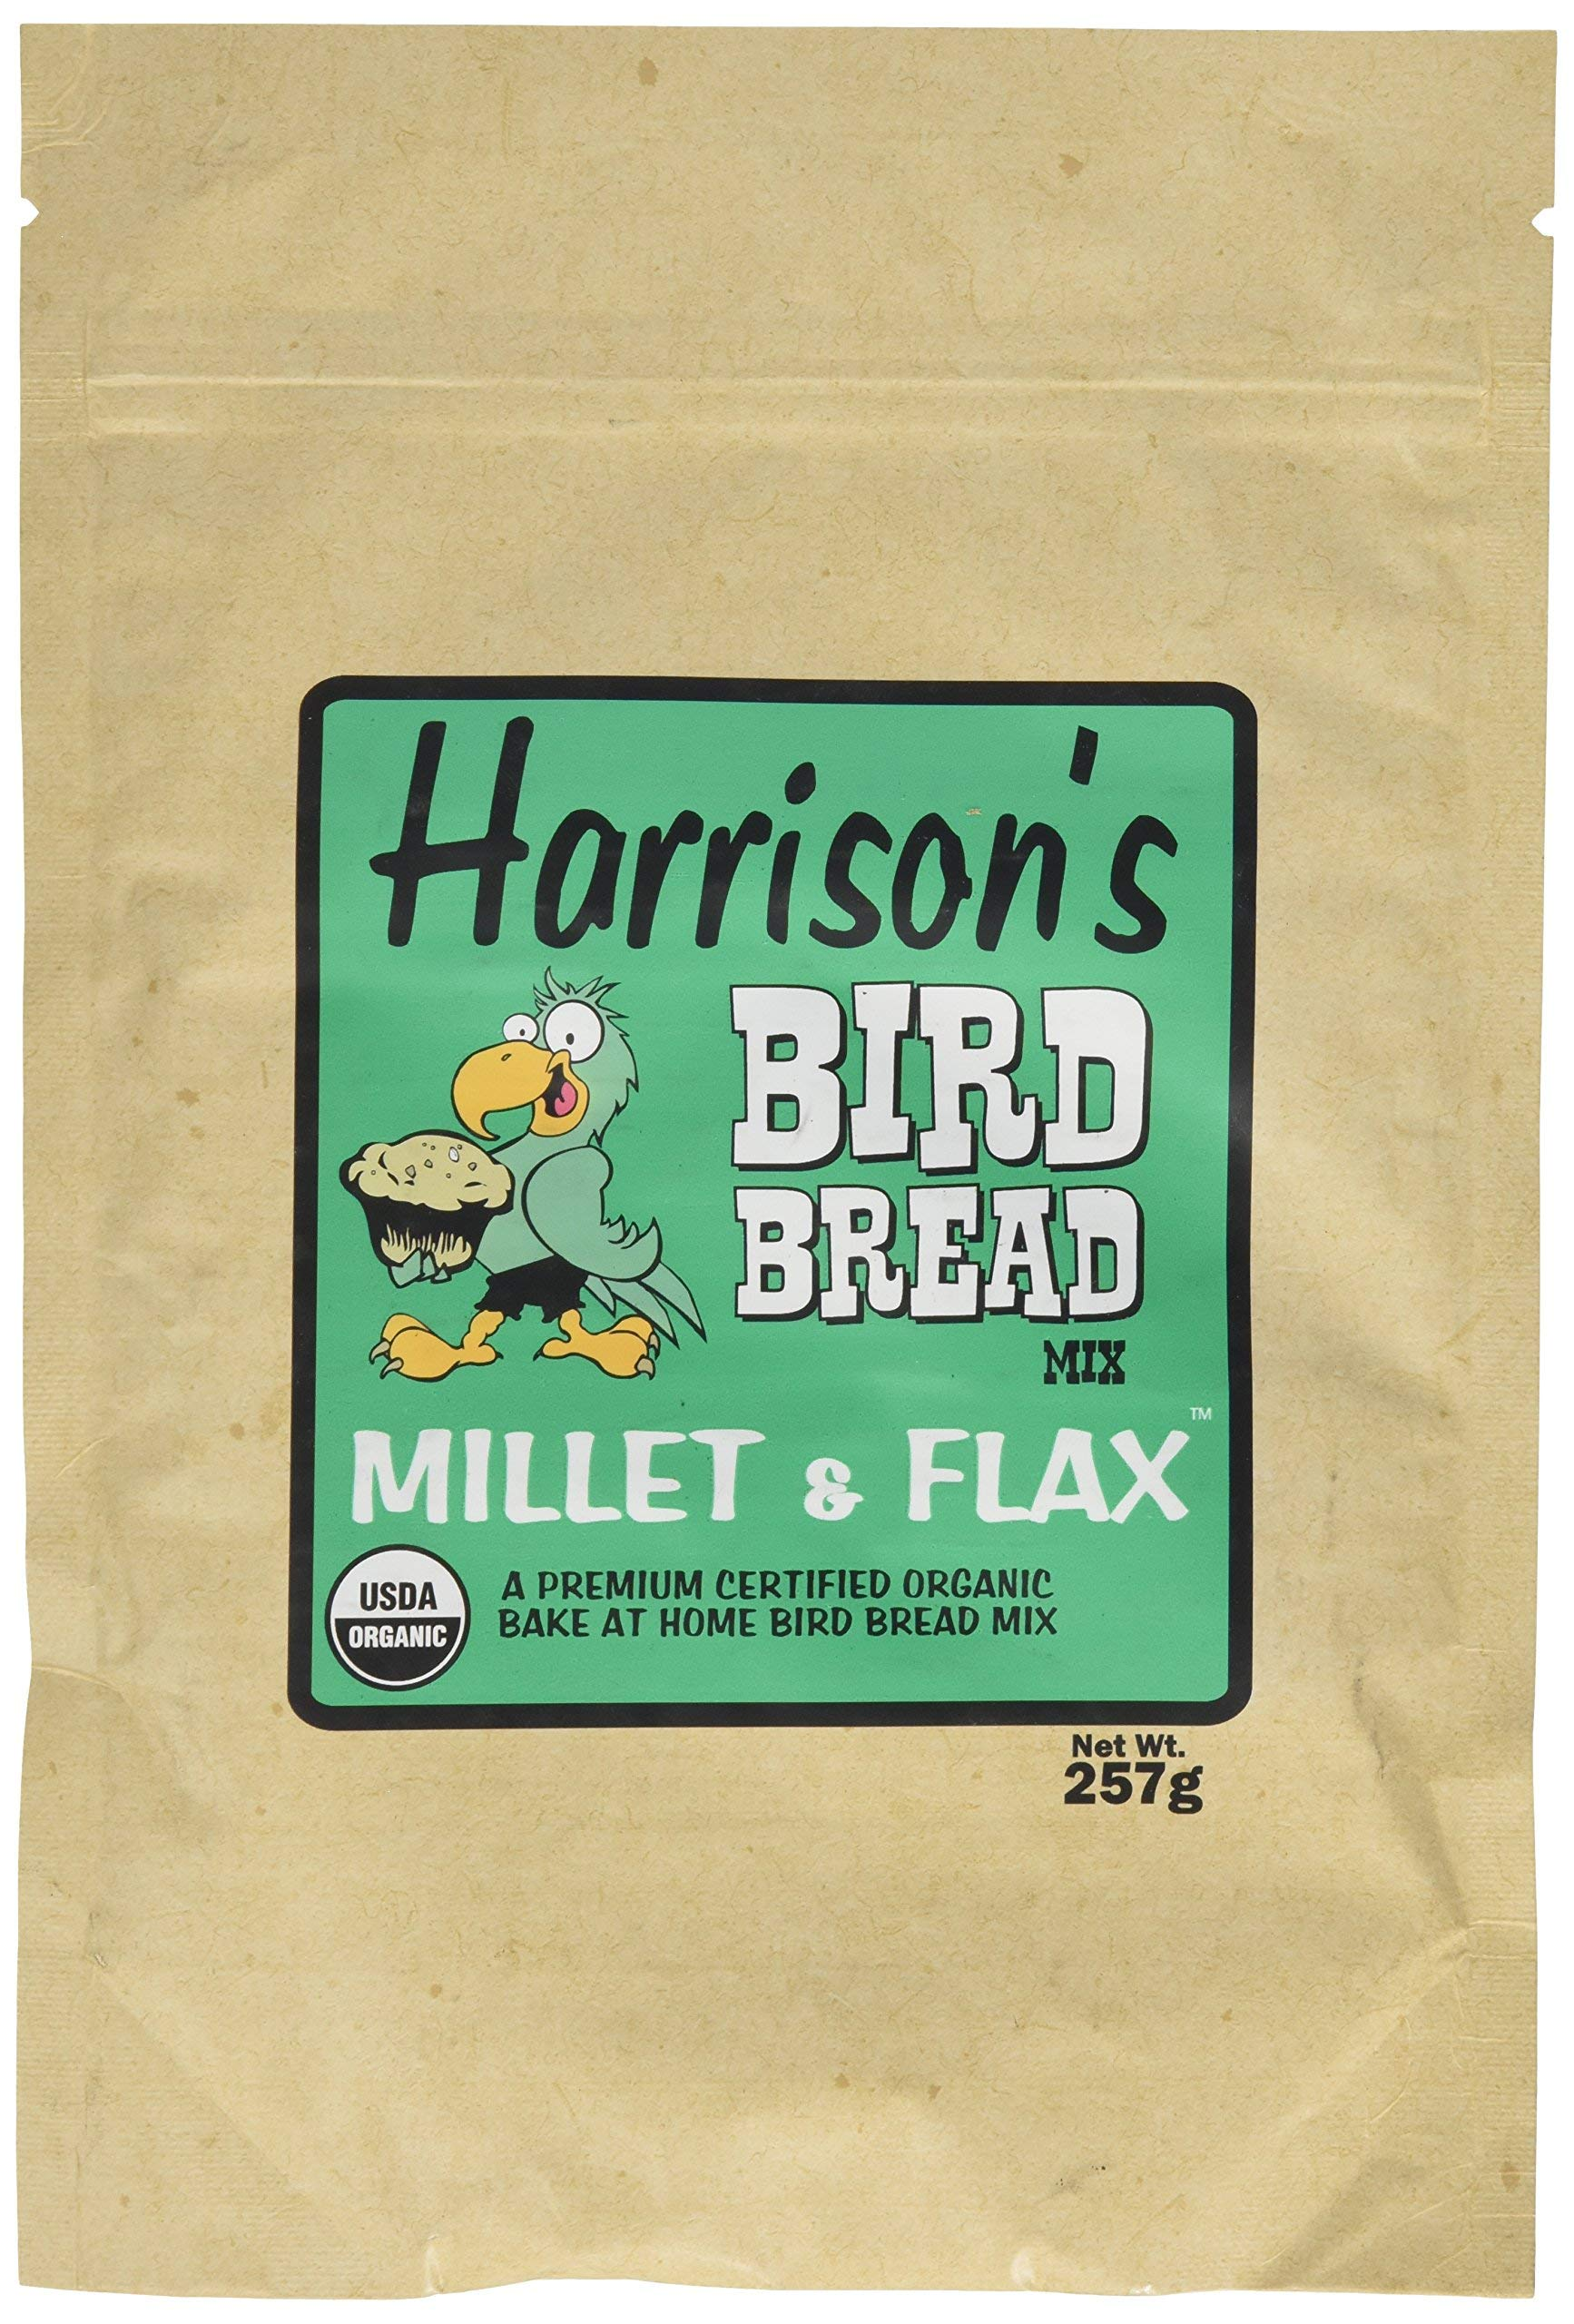 Harrison's Bird Bread Mix - Millet and Flax by Harrison's Bird Foods